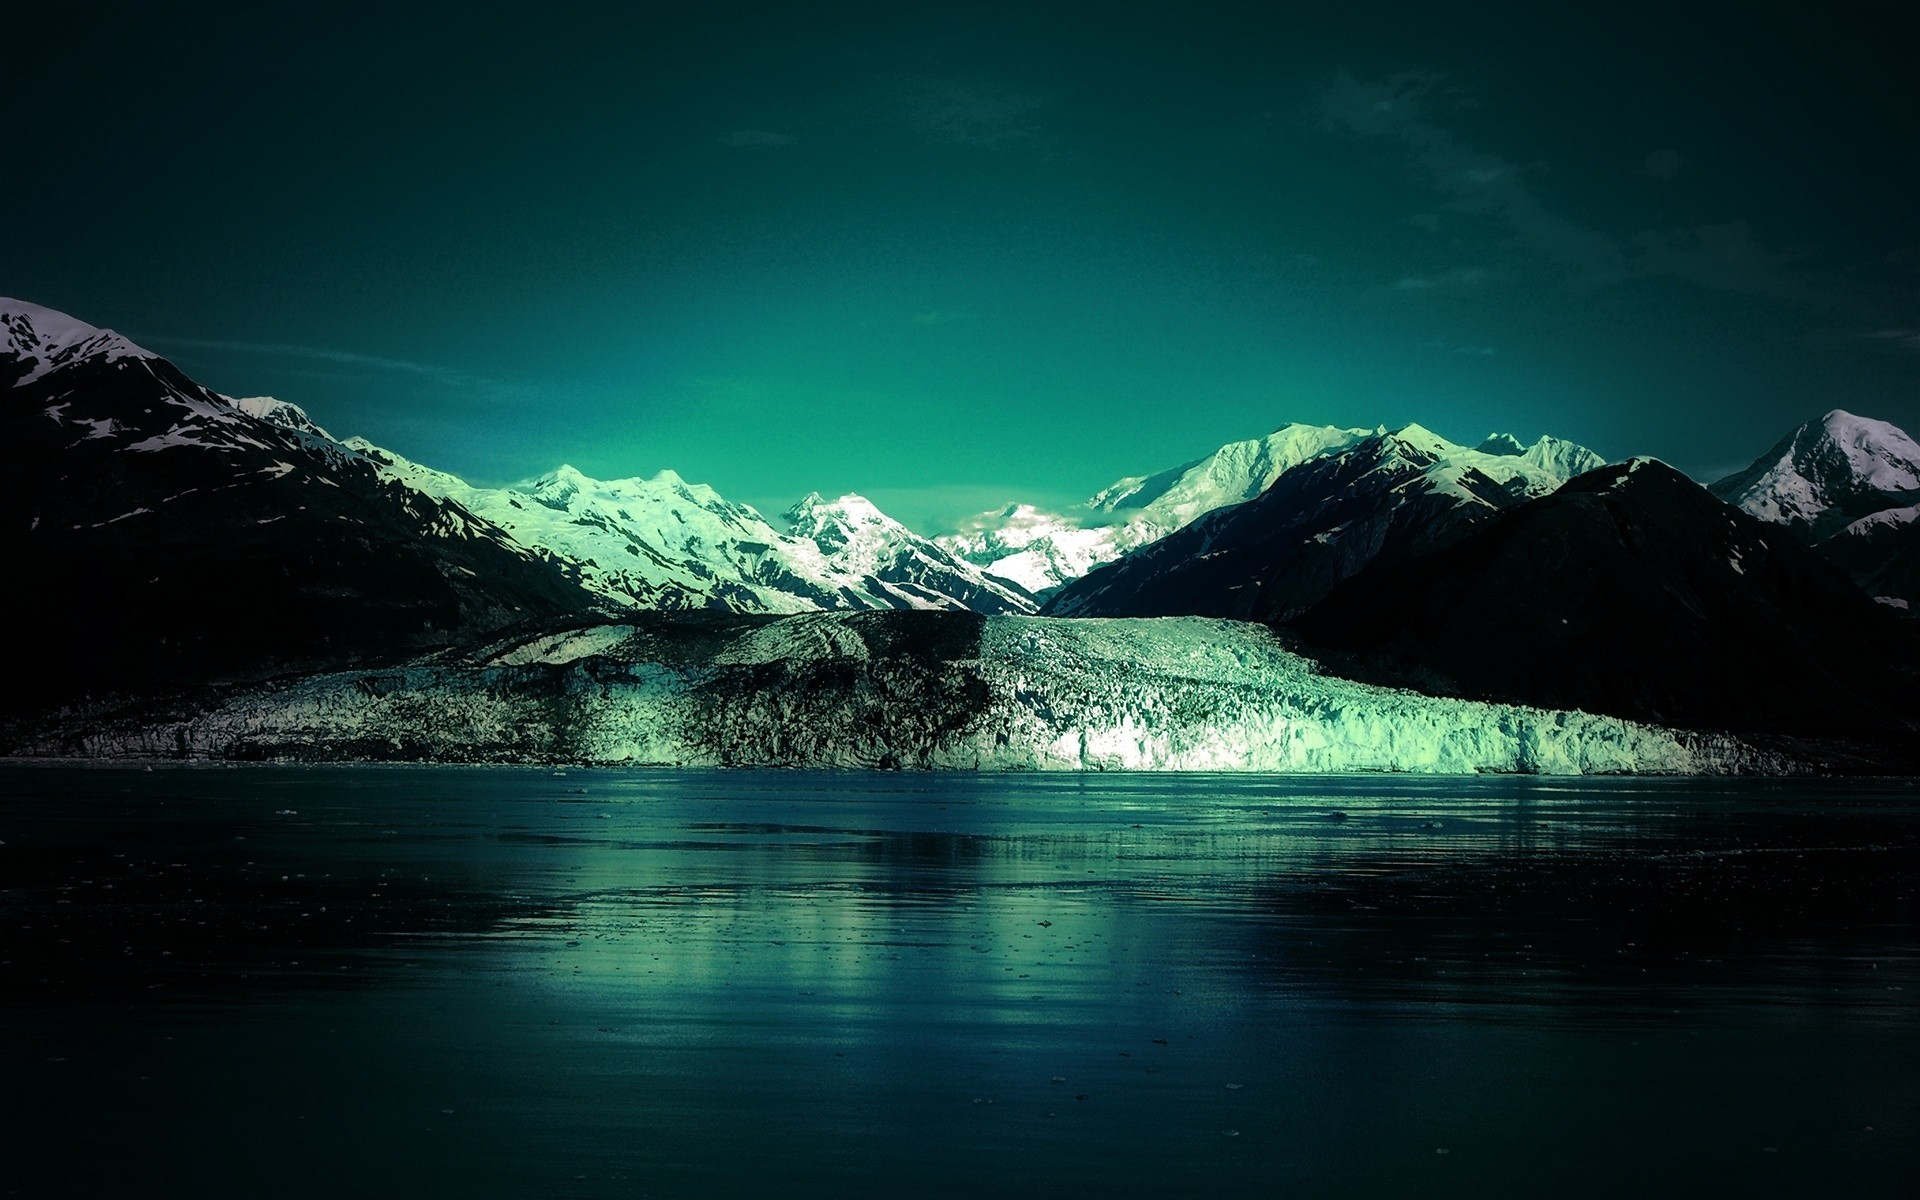 landscapes snow water mountain landscape ice lake travel glacier nature sky reflection sunset